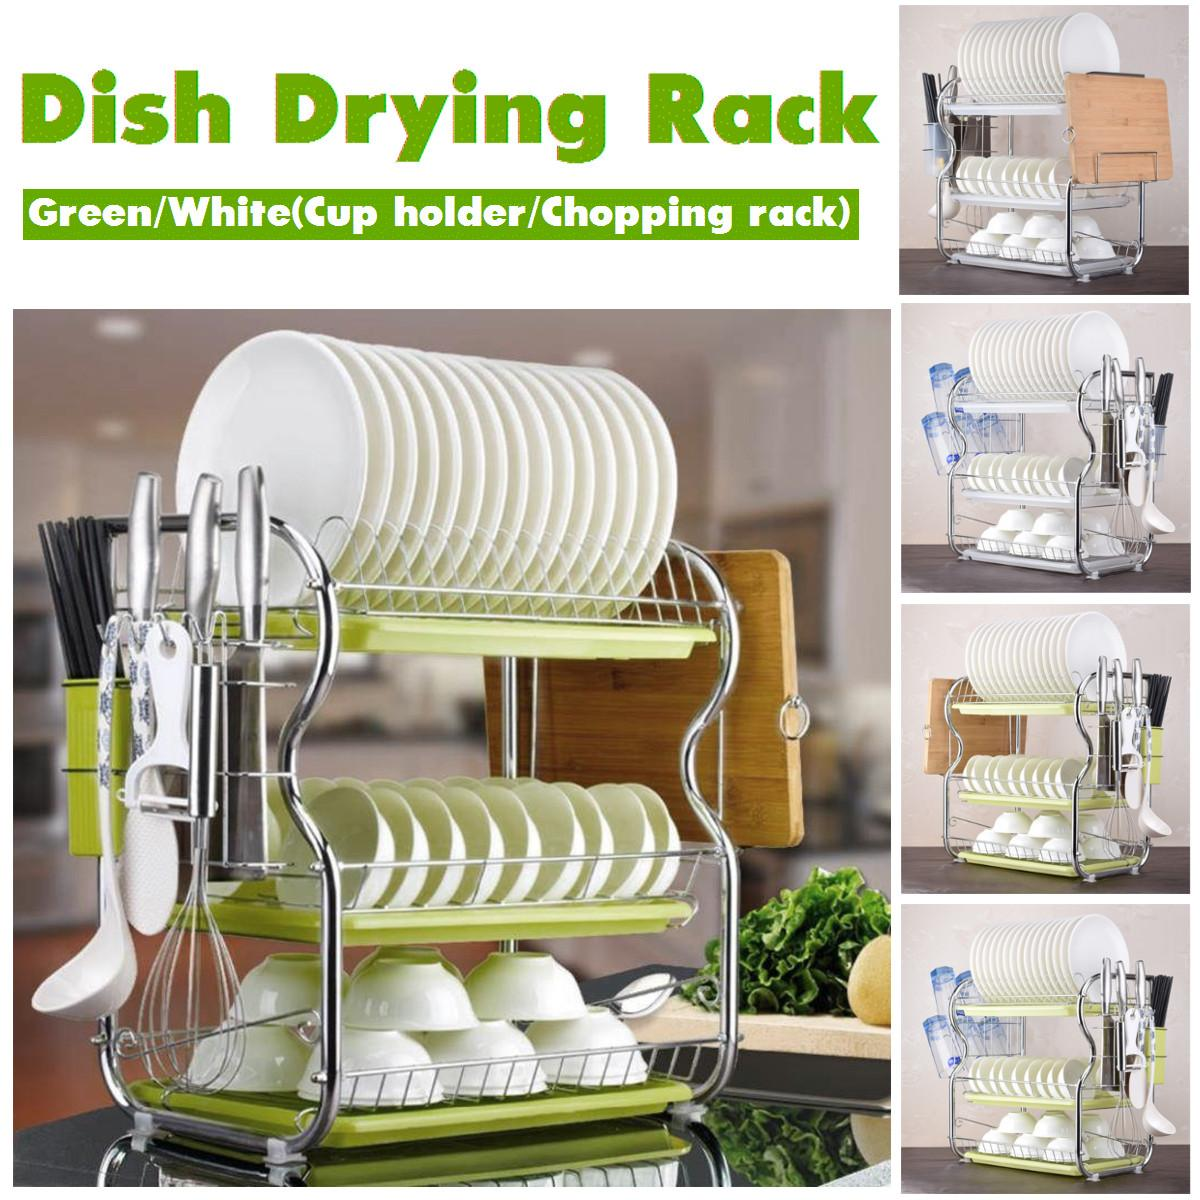 3 Tiers Dish Drying Rack Kitchen Washing Holder Basket Plated Iron Kitchen Knife Sink Dish Drainer Drying Rack Organizer